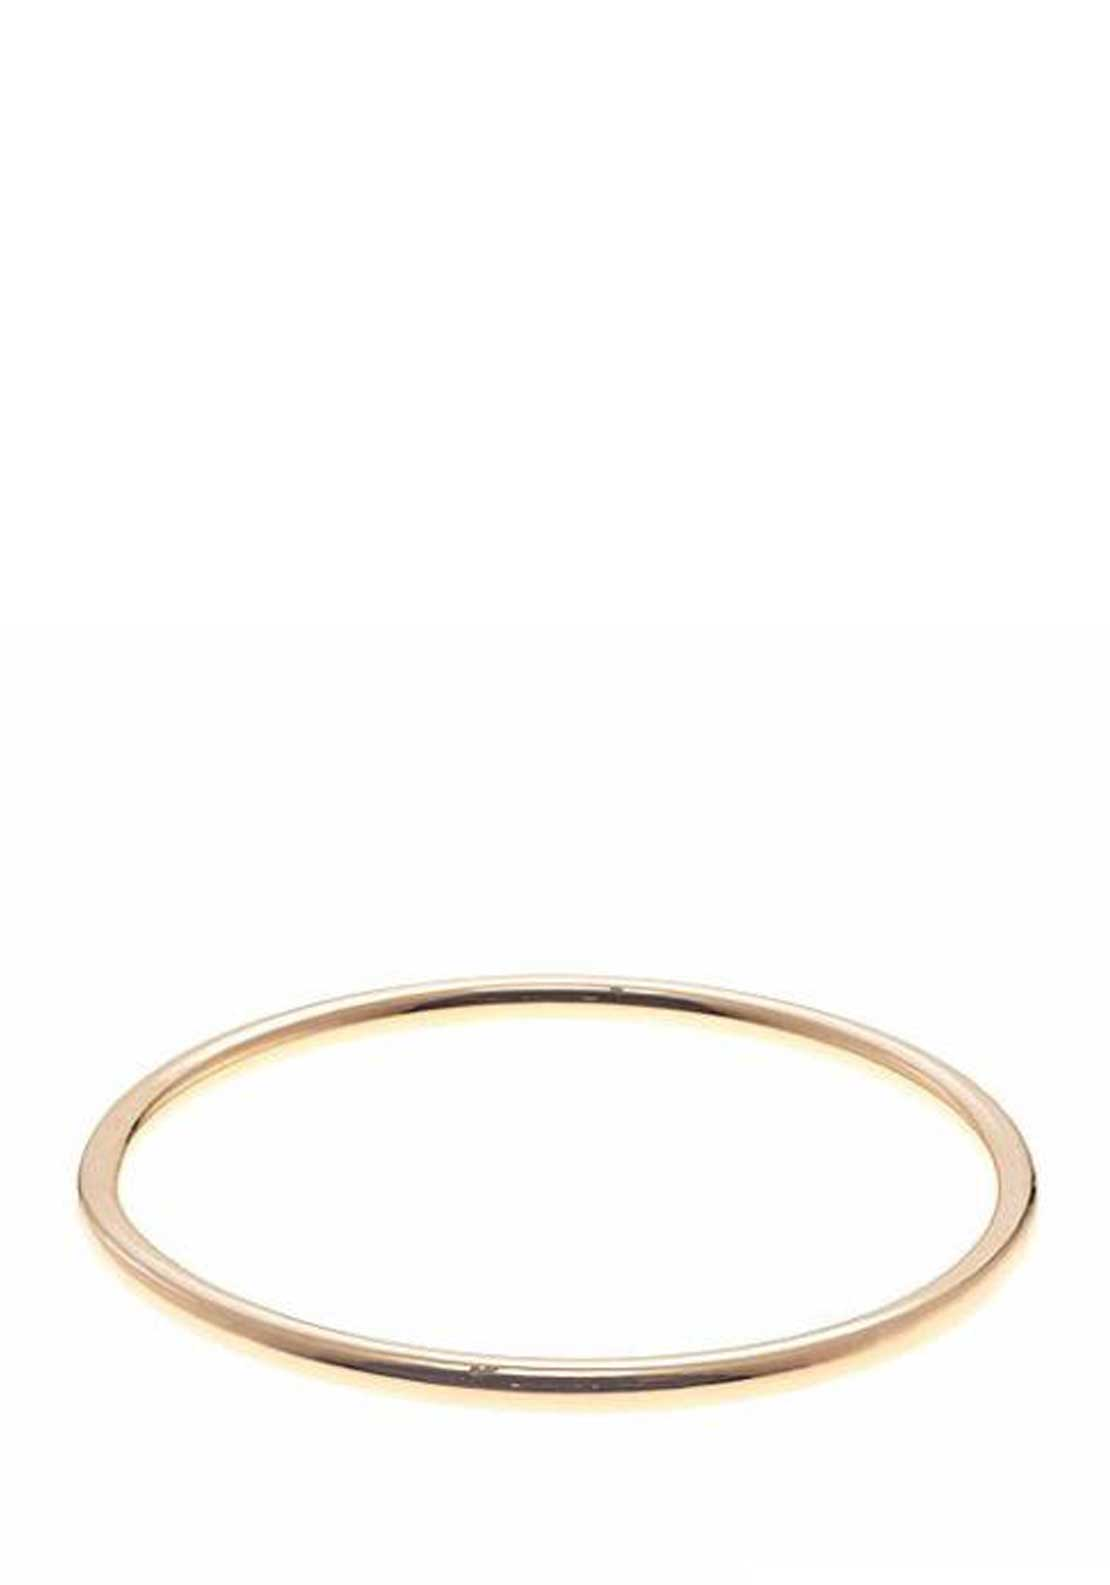 Bronzallure Plain Rounded Bangle, Rose Gold